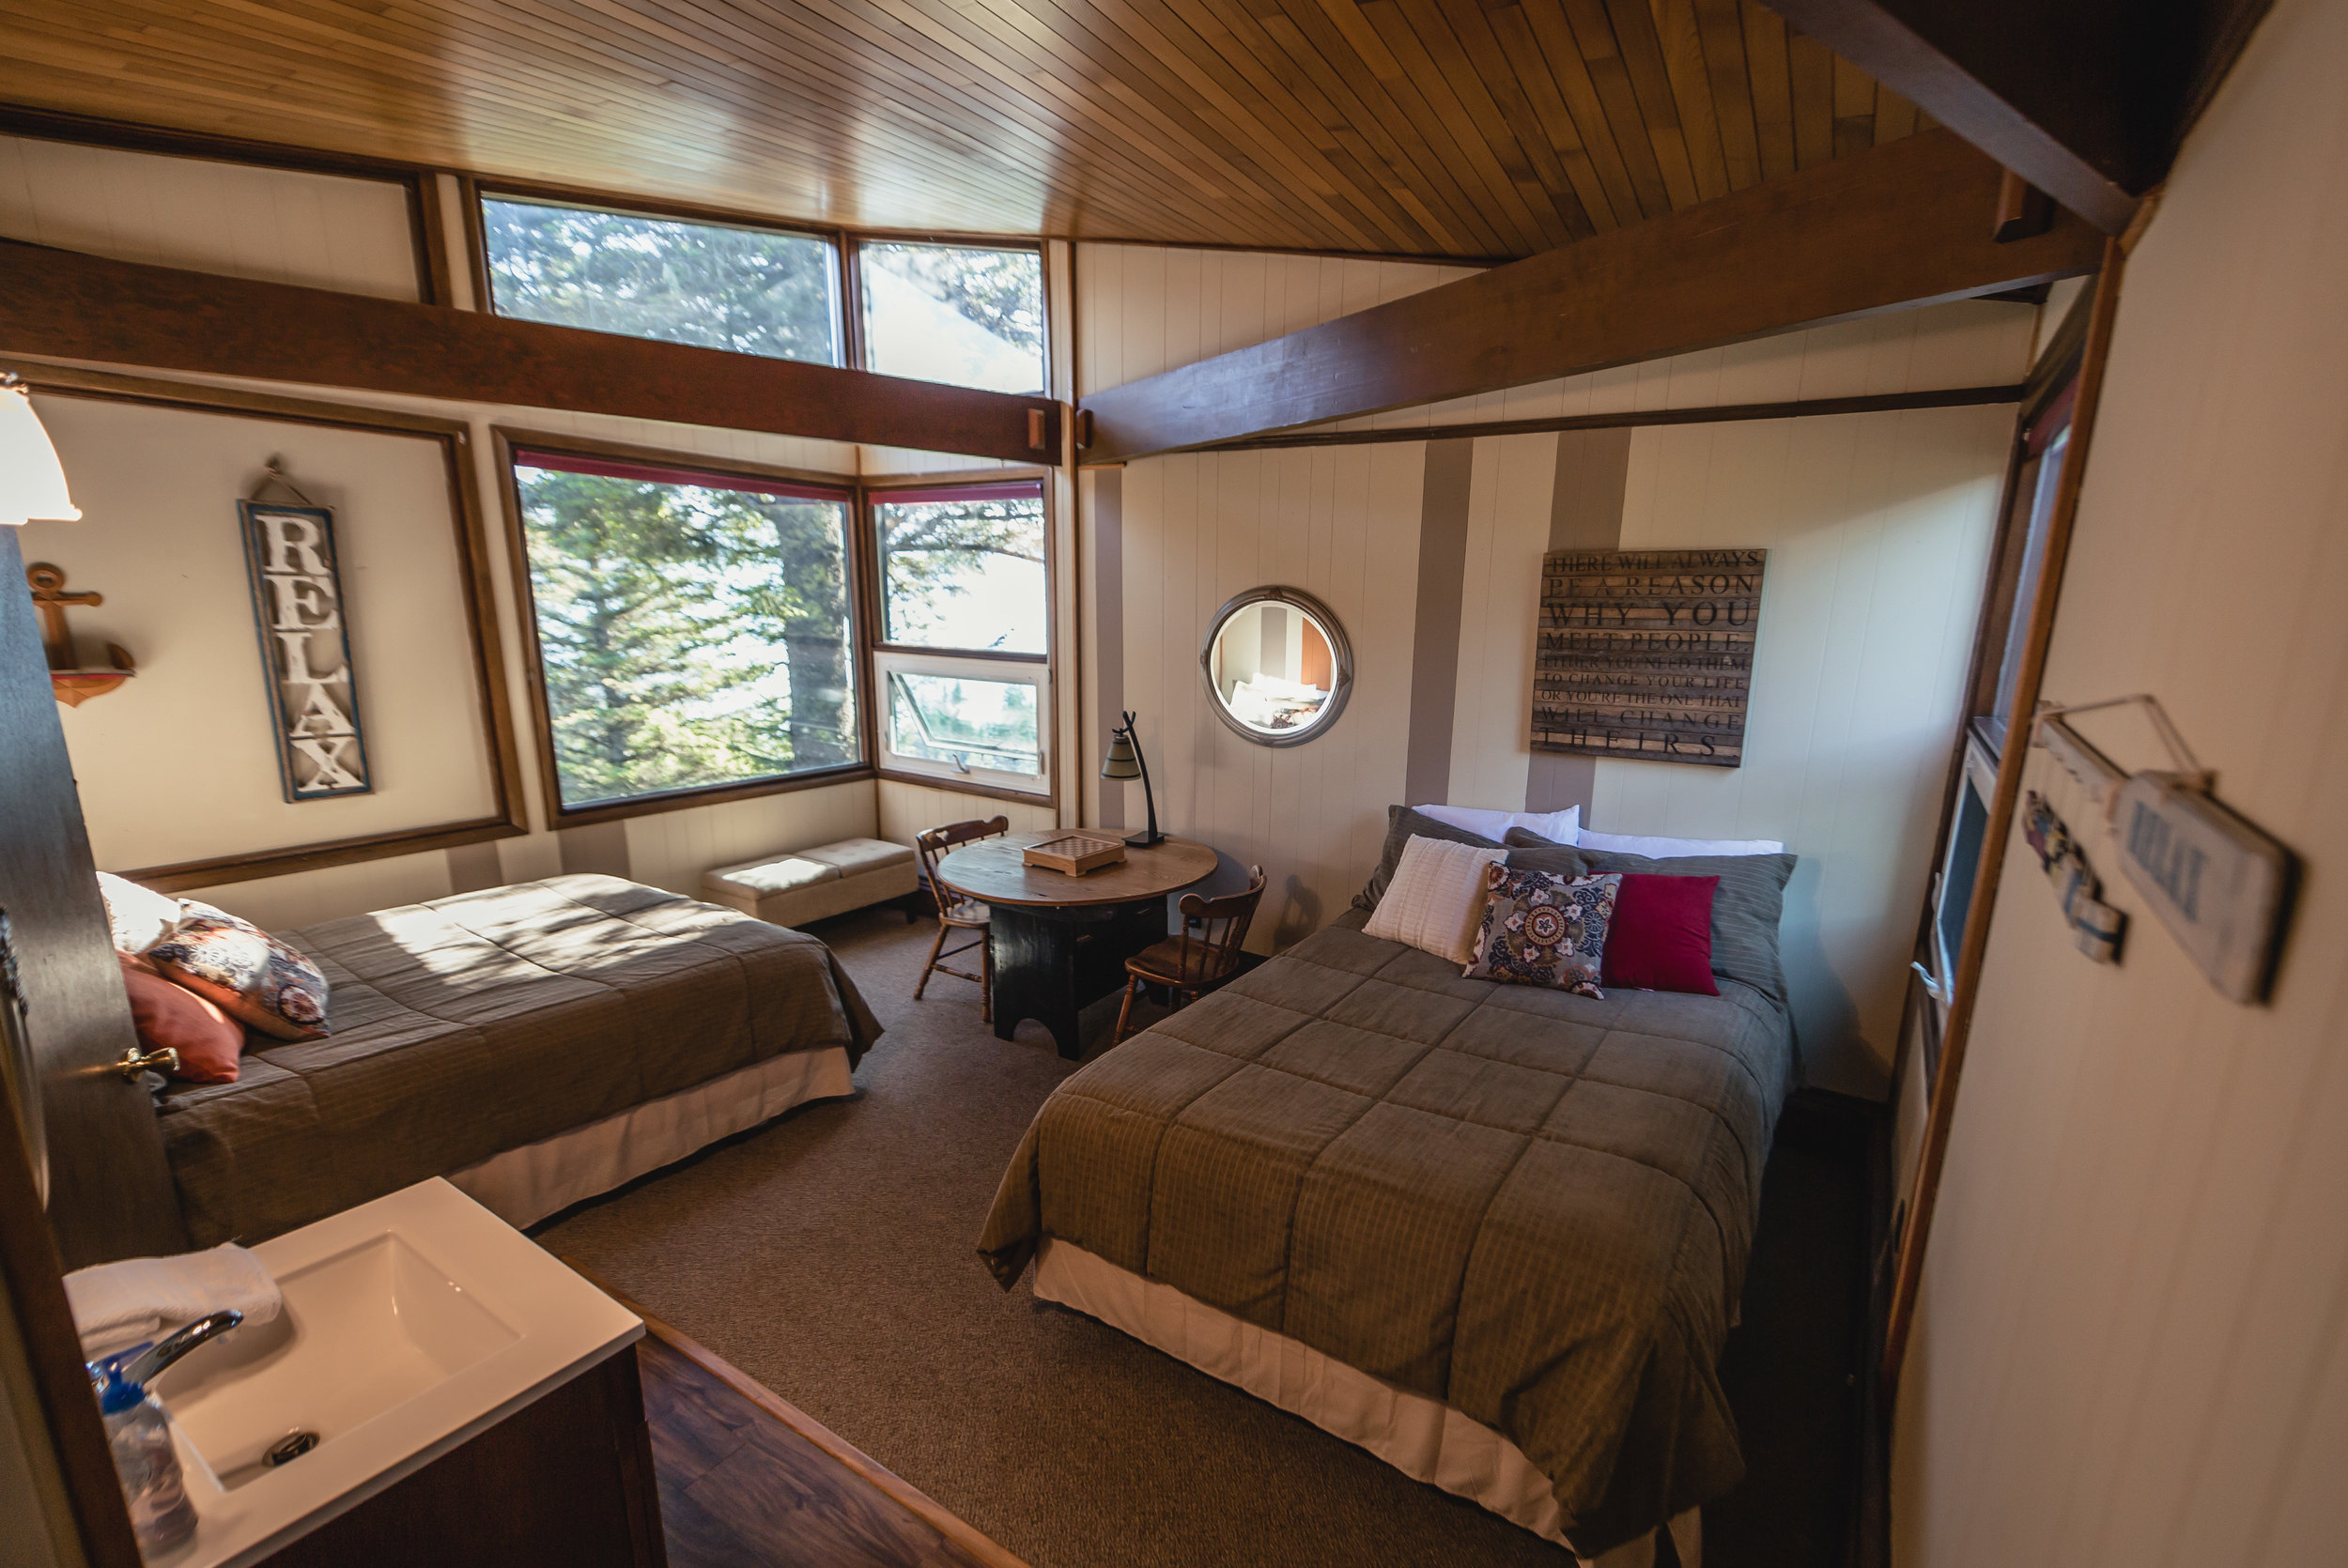 2019-06-06_The_Timber_House_Photo (1 of 37).jpg